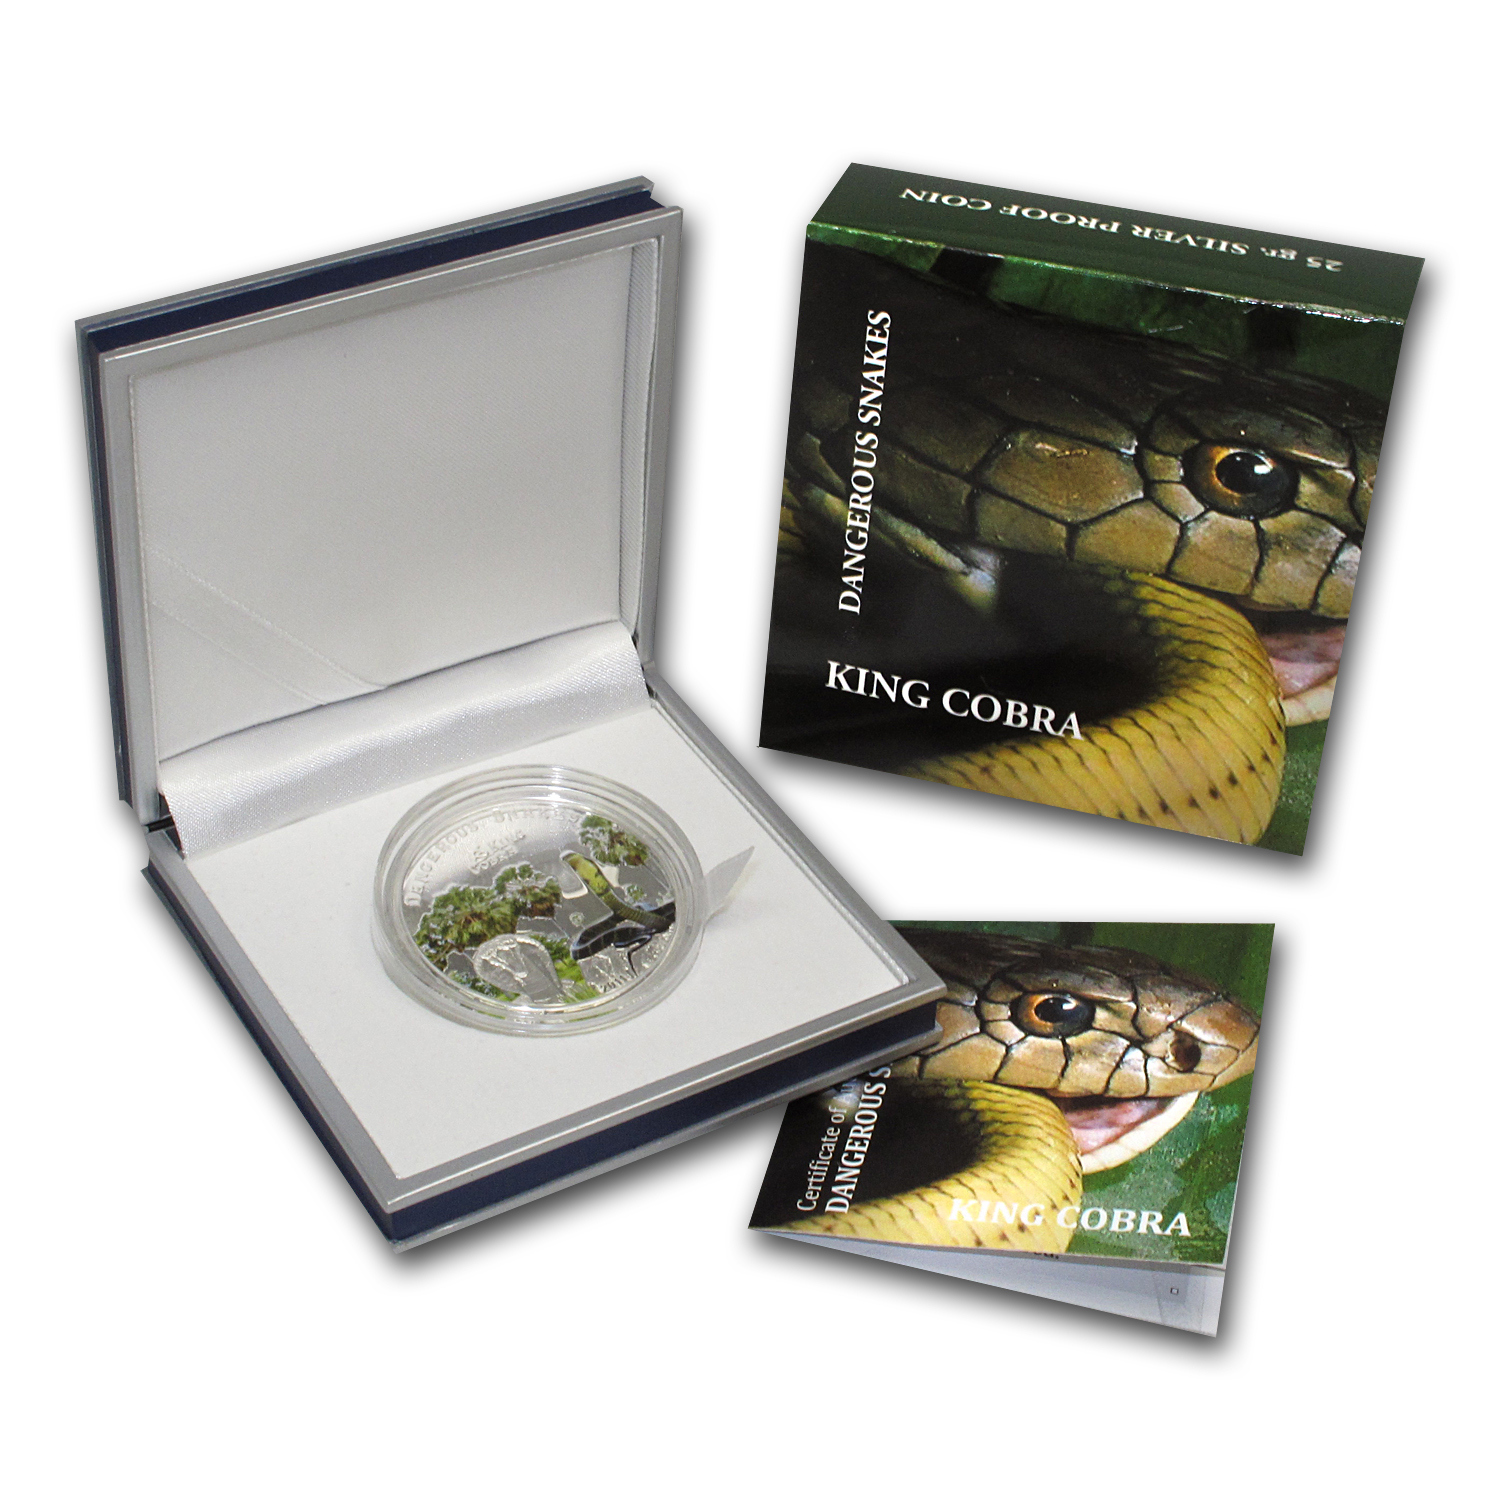 2011 Cook Islands Proof Silver $5 Dangerous Snakes King Cobra